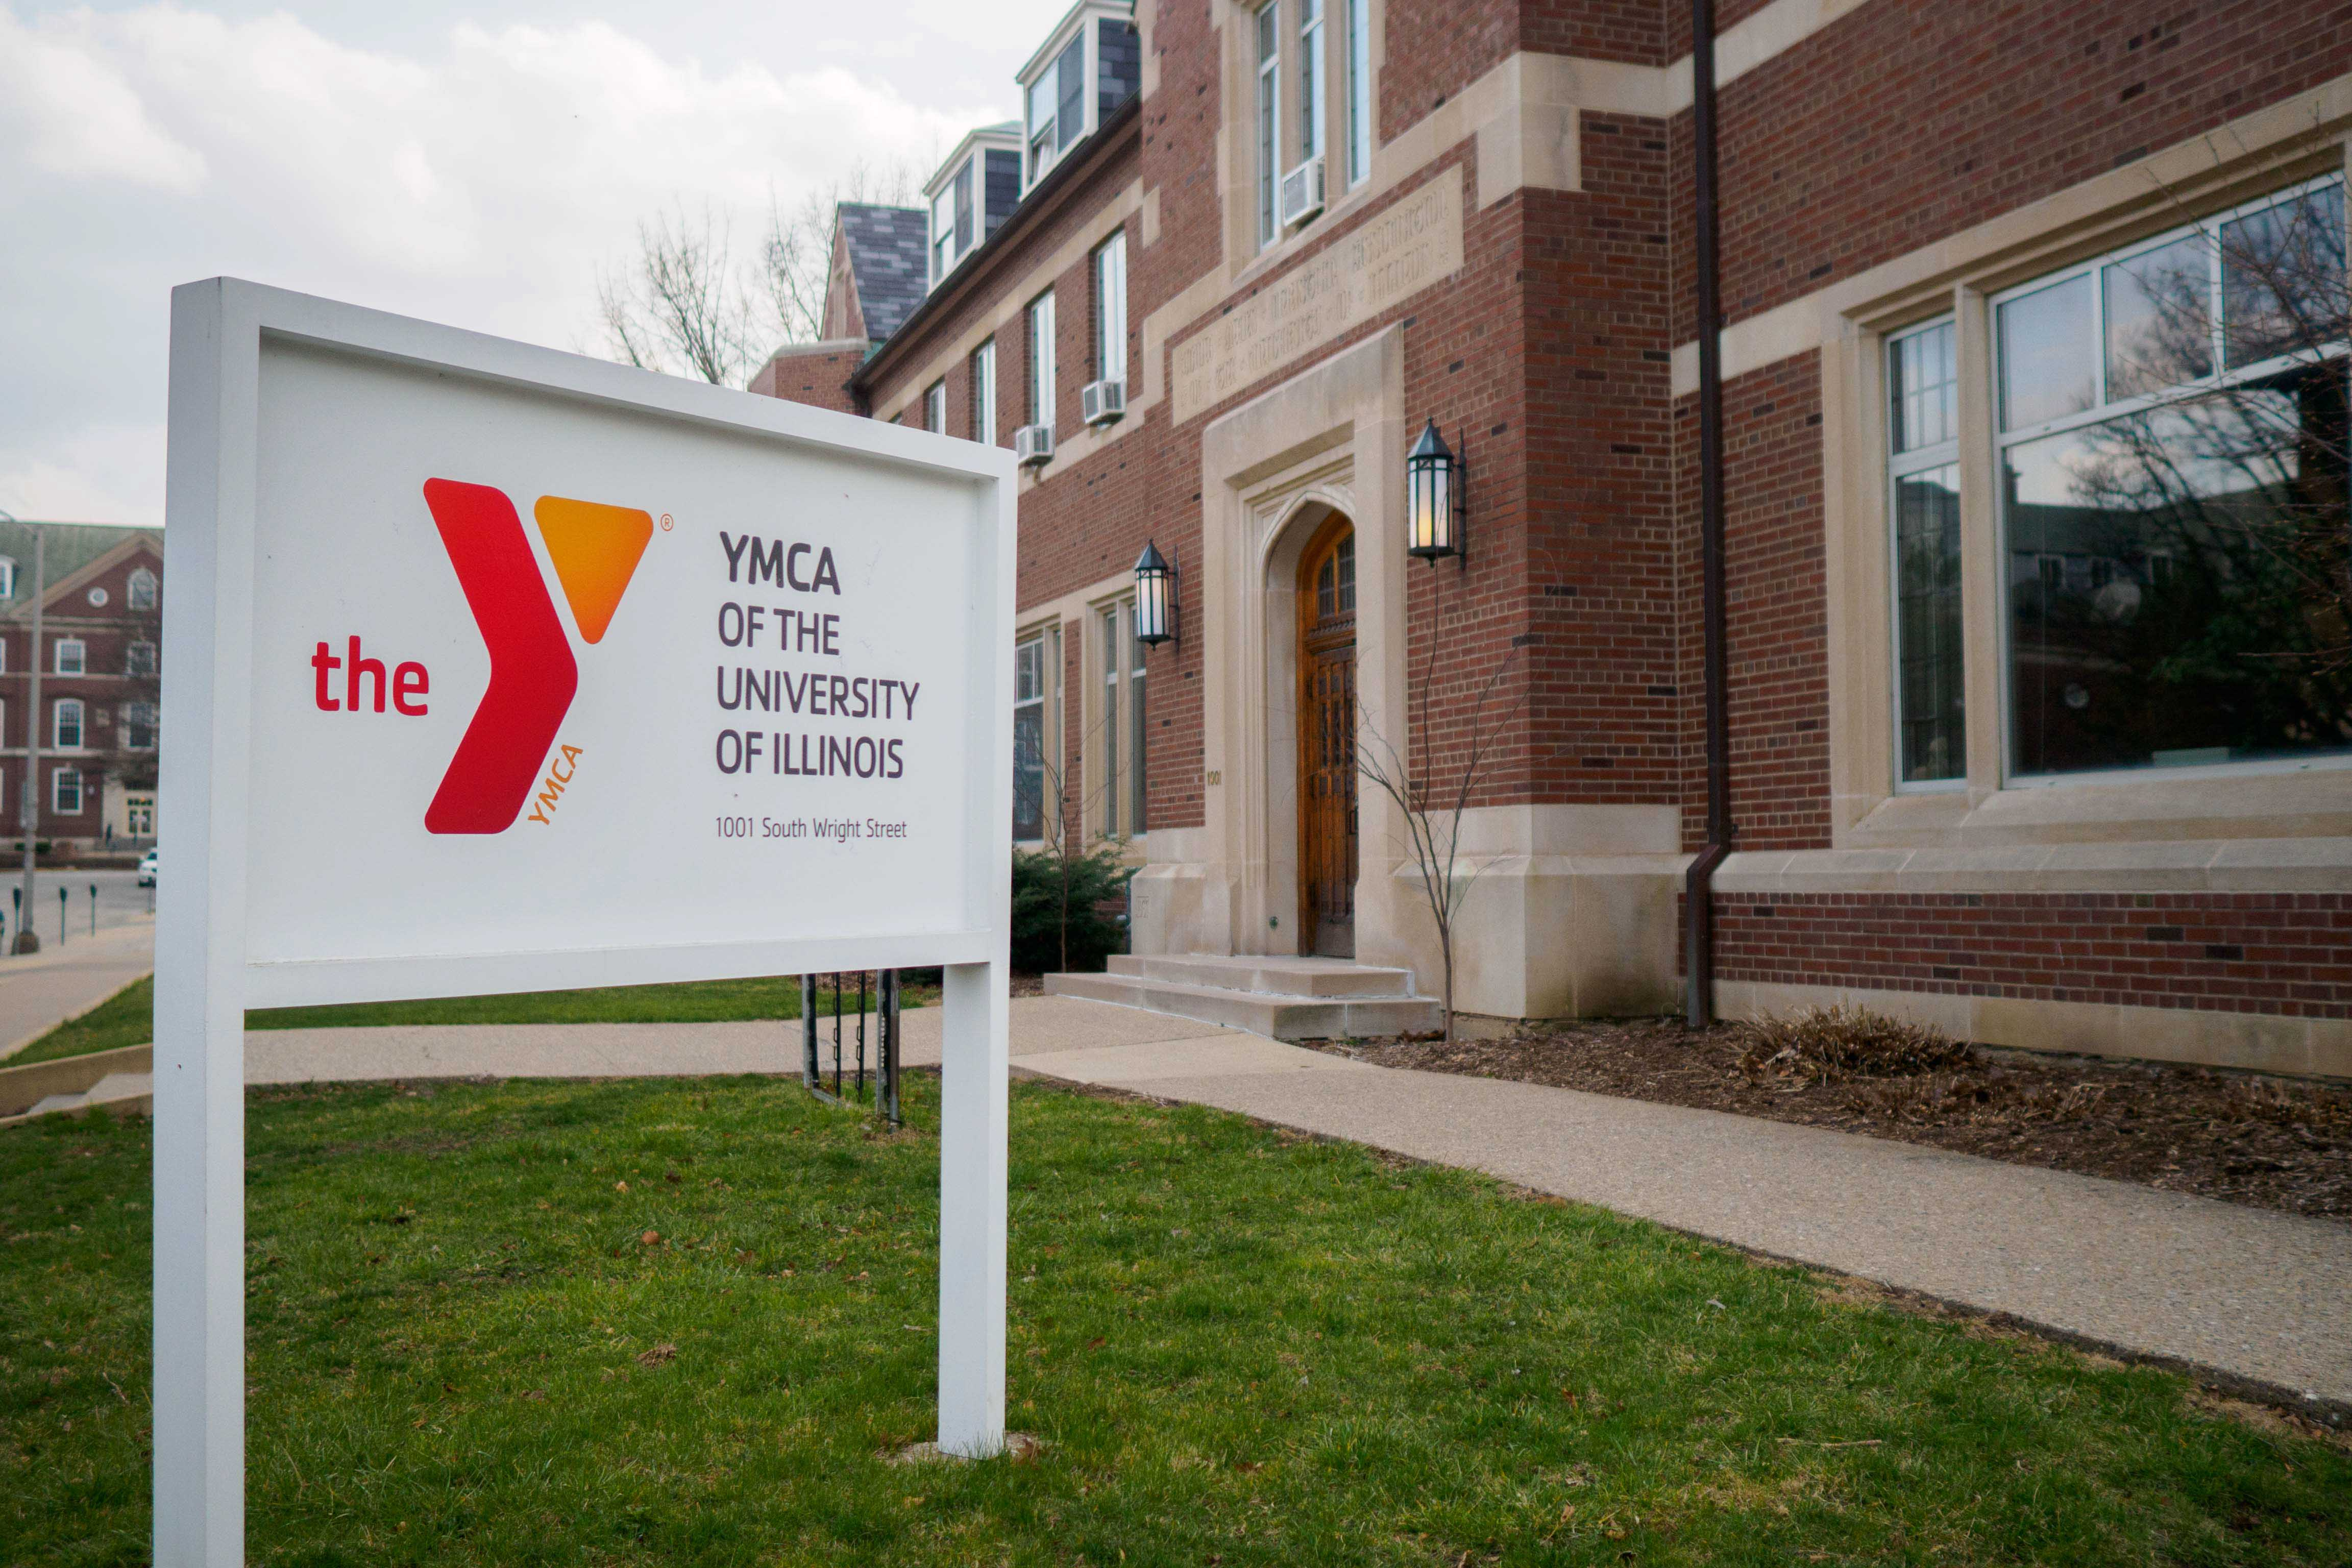 Outside of the YMCA of the University of Illinois. Three Spinners Inc., located inside of the YMCA, opened a community resource center in an effort to provide a more inclusive, welcoming environment.